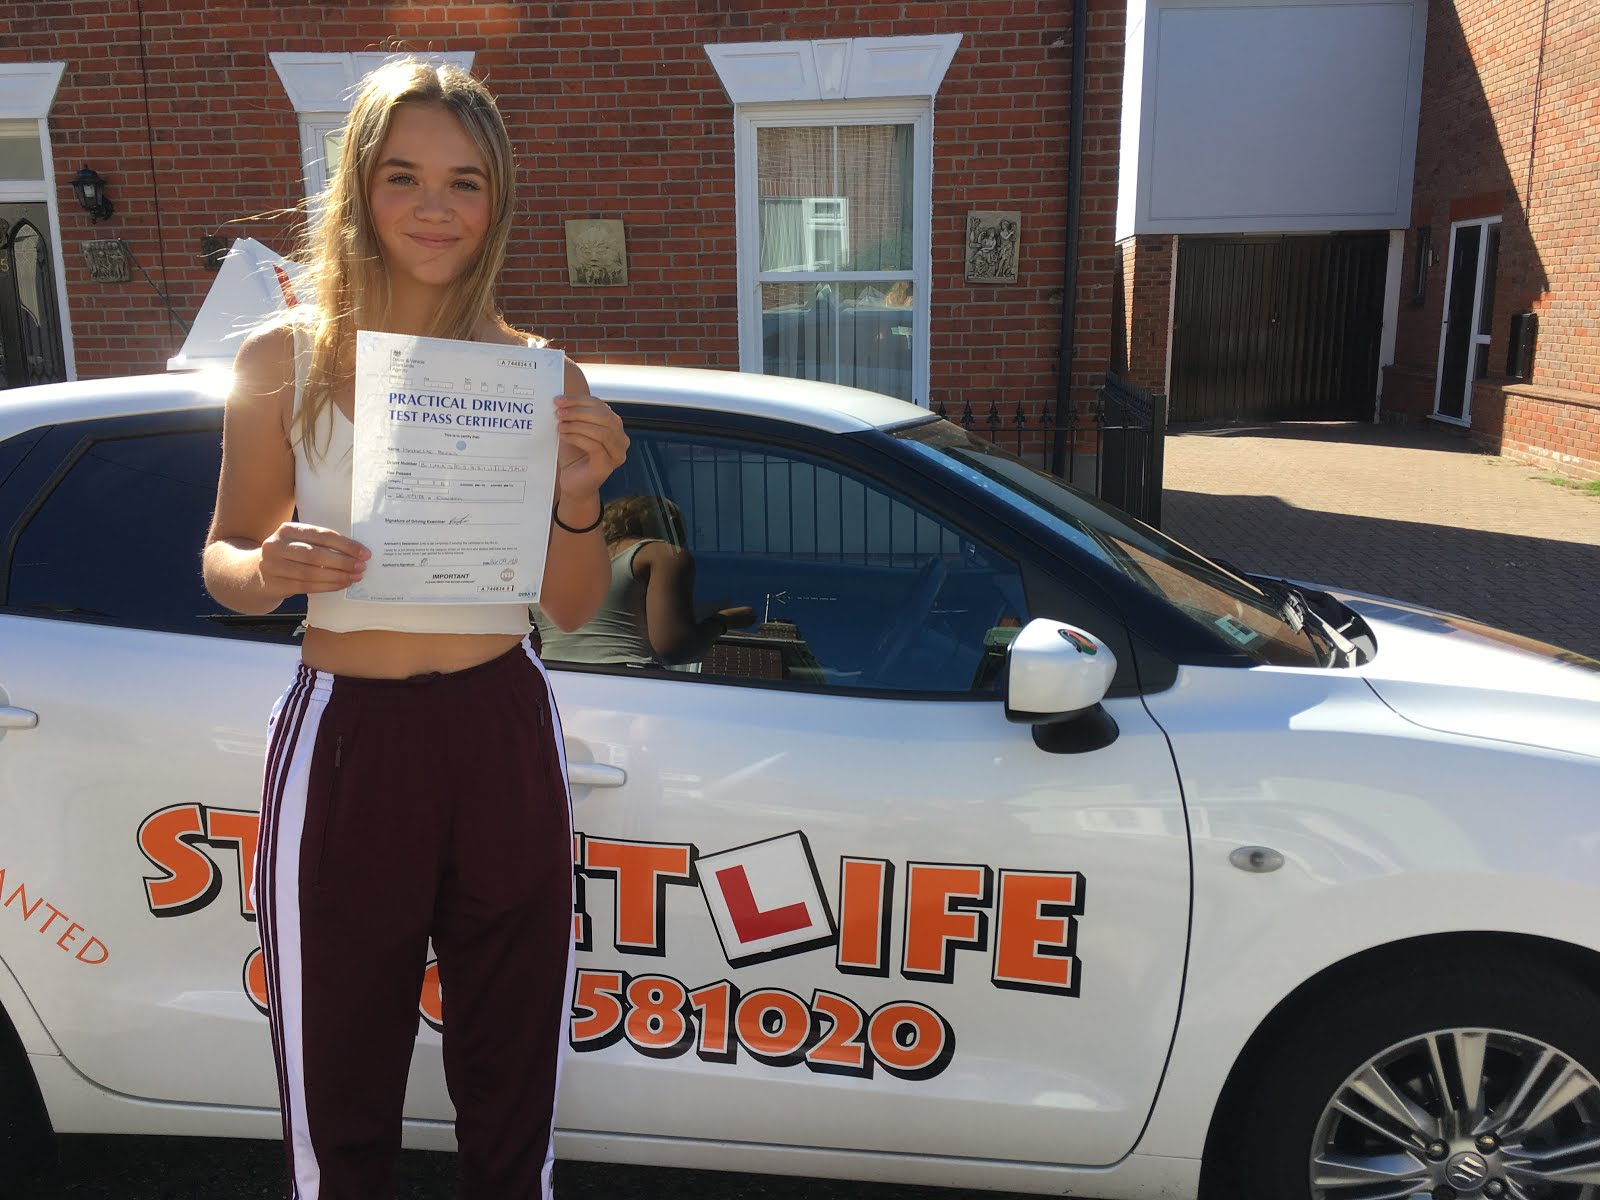 pass driving test first time 2018